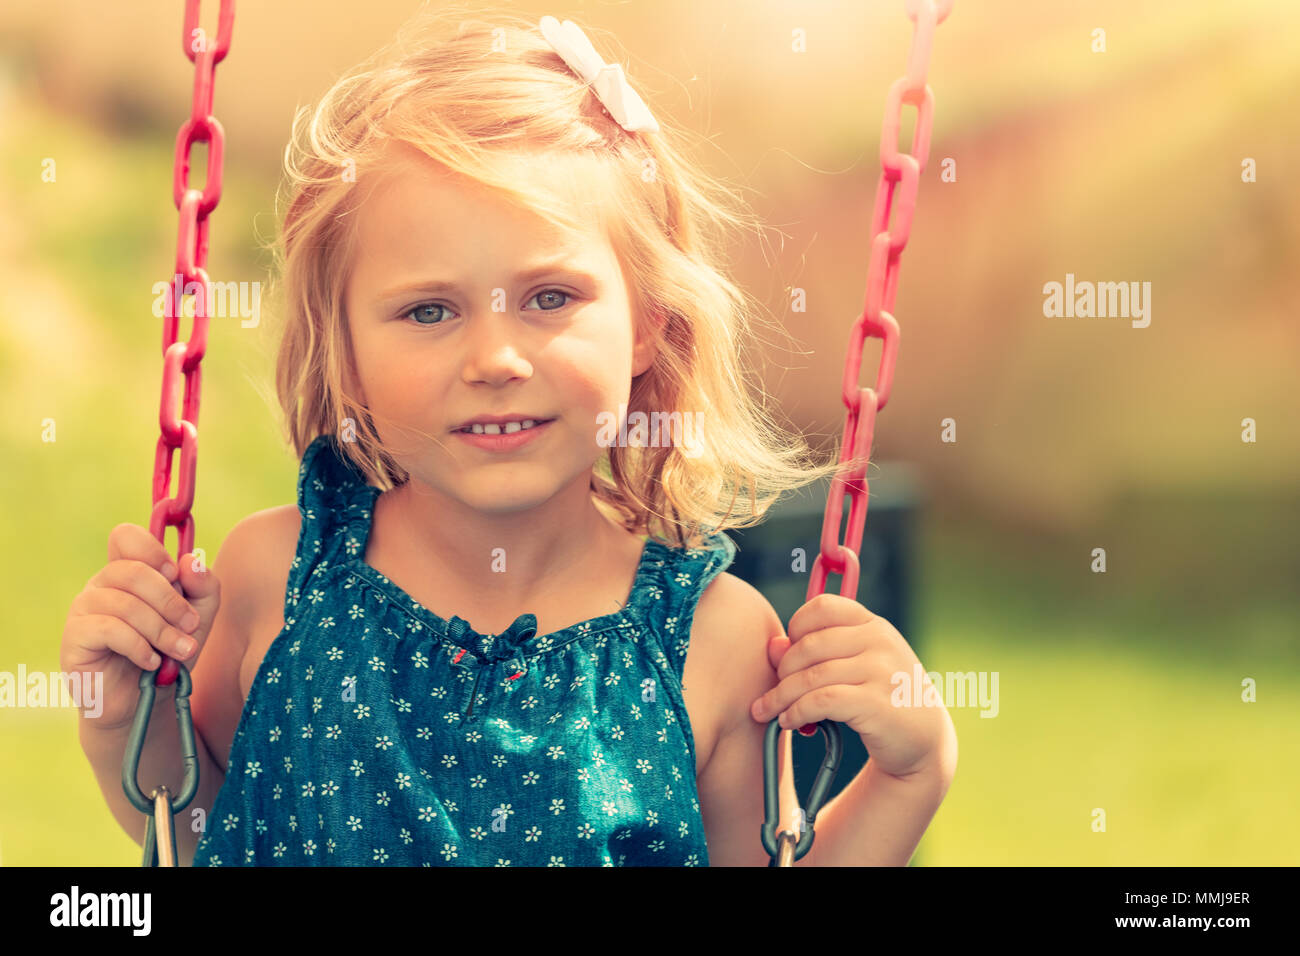 cute baby girl swinging on swing outdoors, nice adorable child